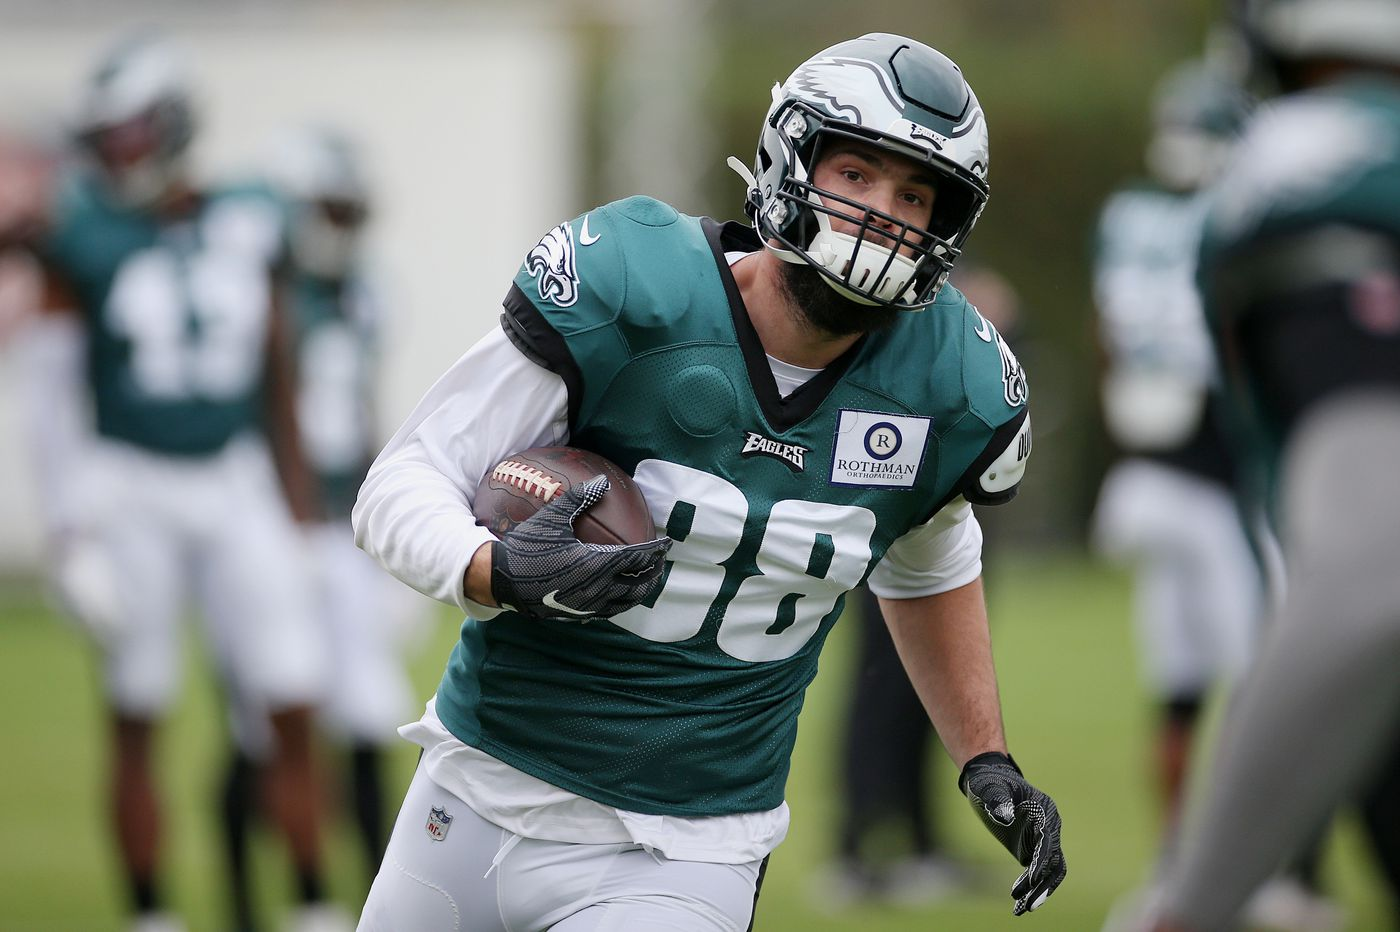 For Eagles quarterback Carson Wentz, help is on the way as Jalen Reagor, Dallas Goedert, and Jason Peters return to practice